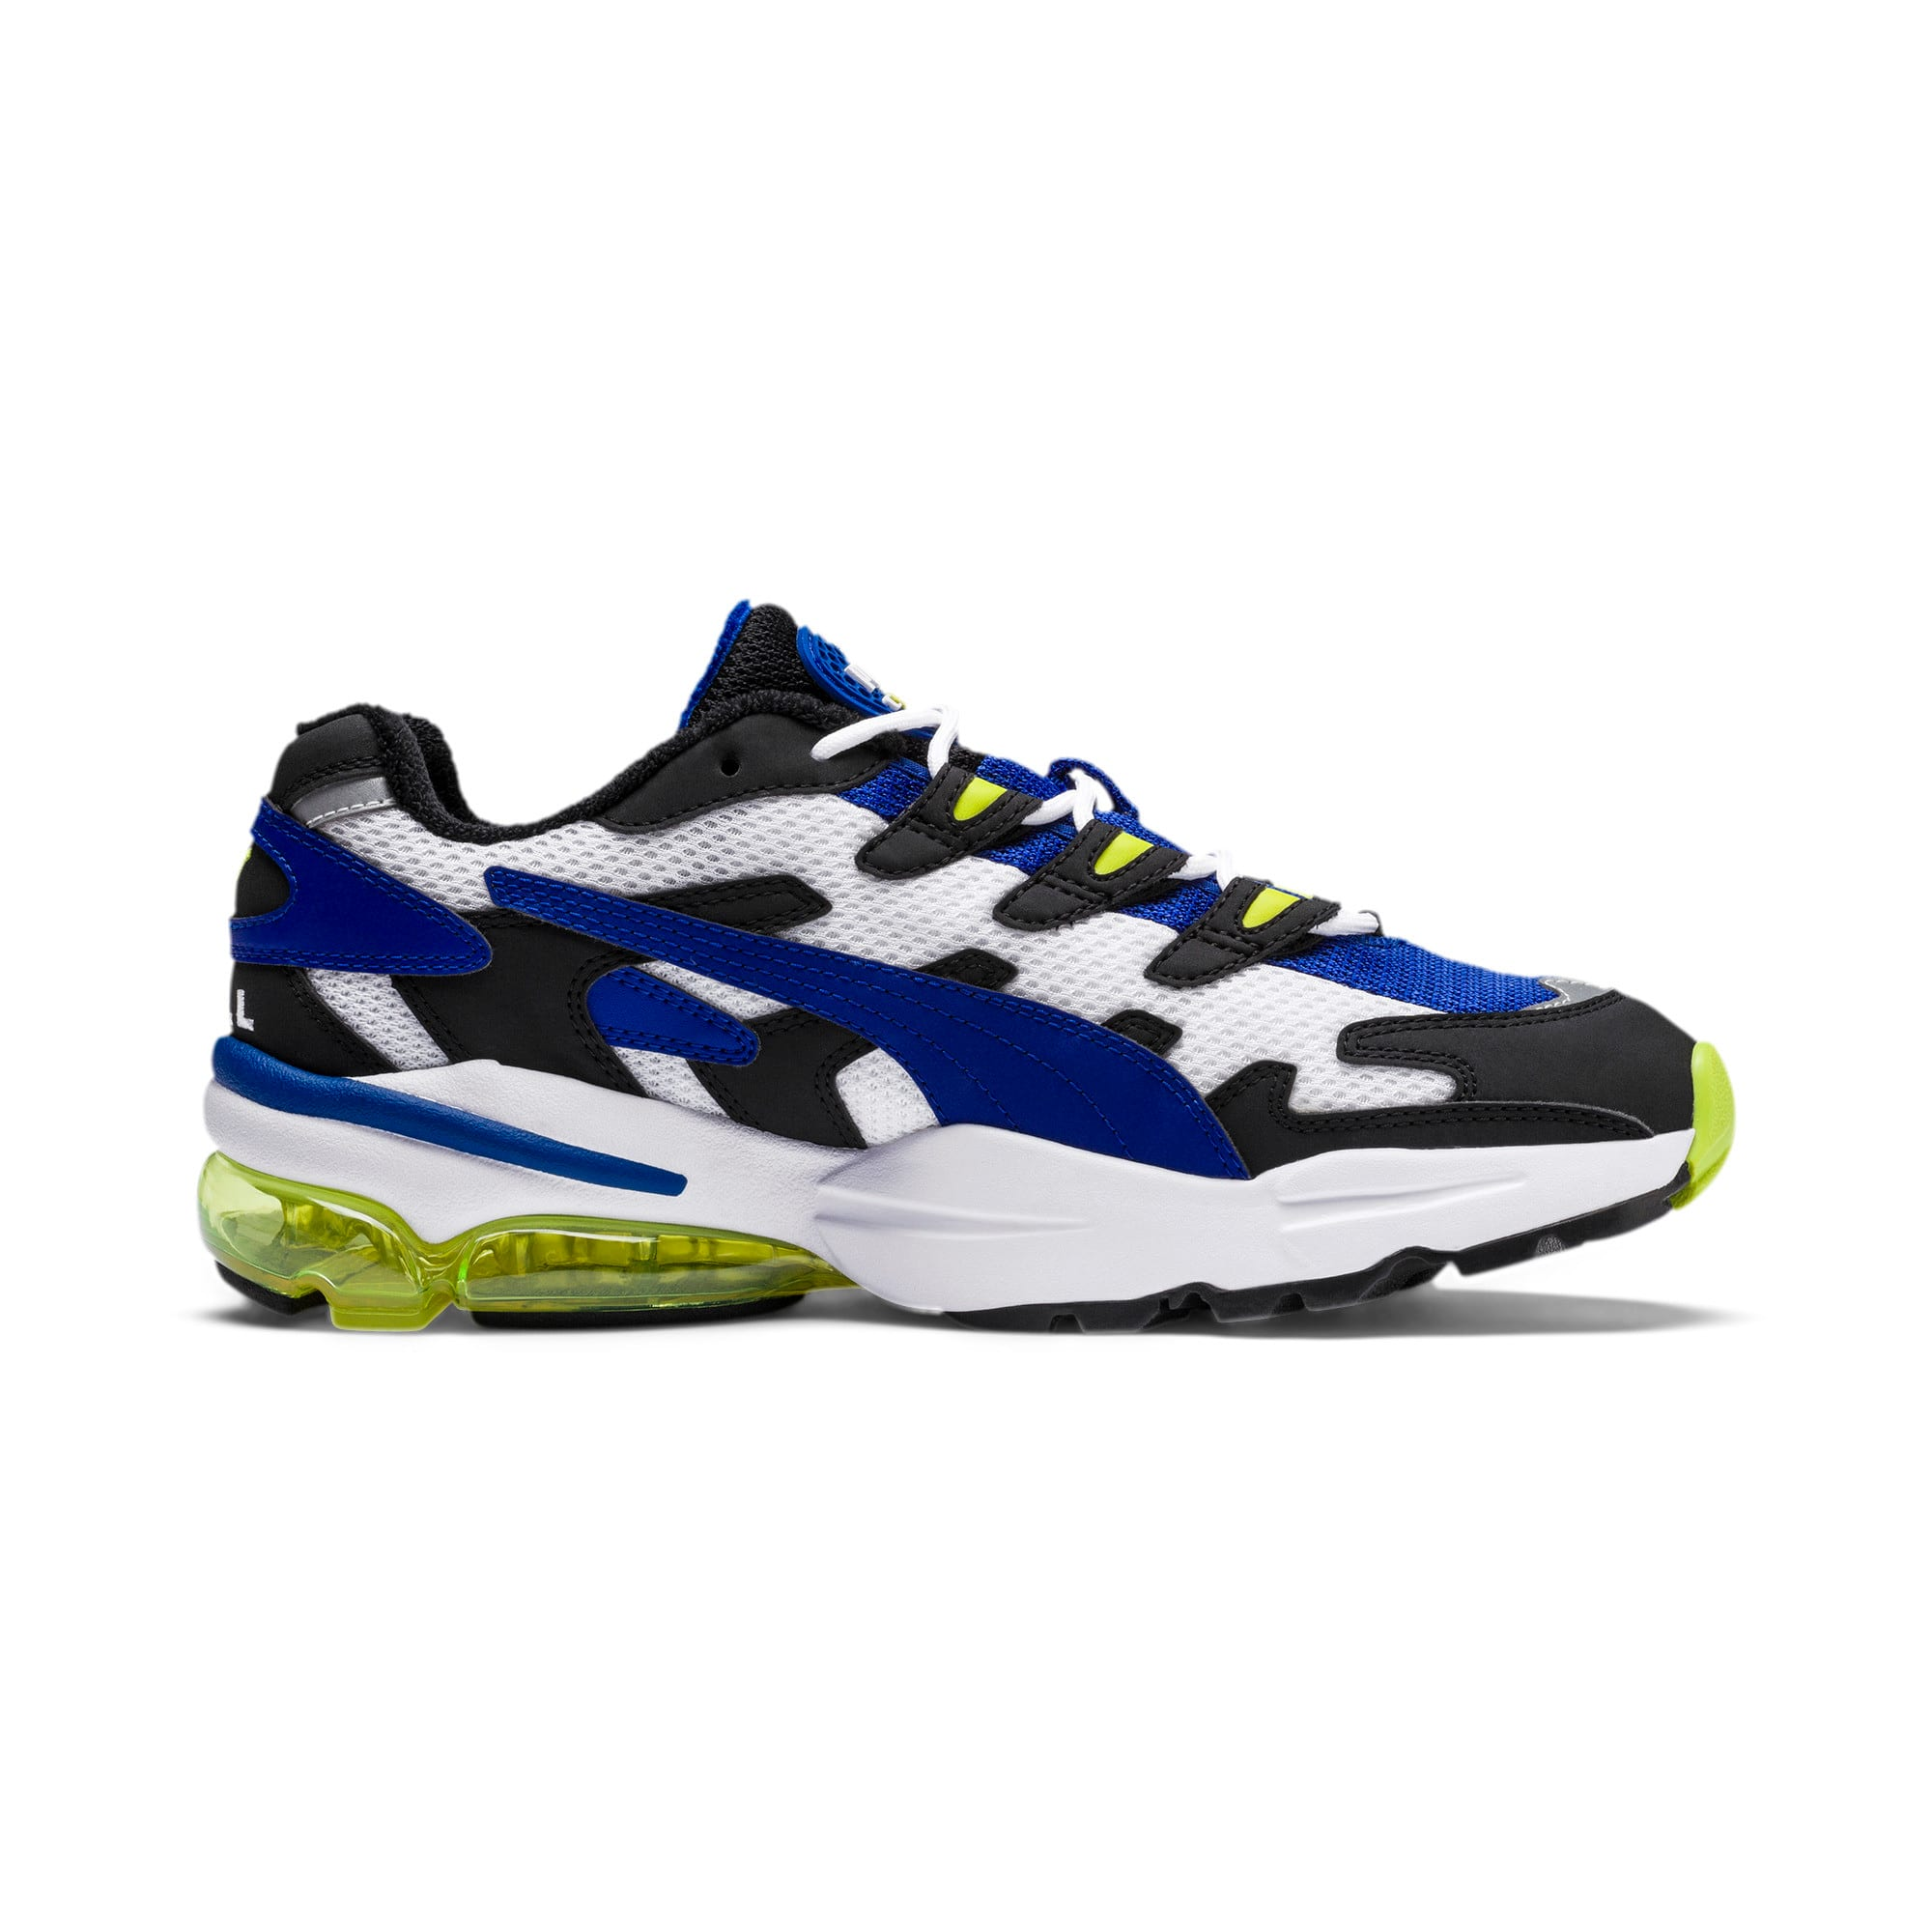 Thumbnail 7 of CELL Alien OG Trainers, Puma Black-Surf The Web, medium-IND